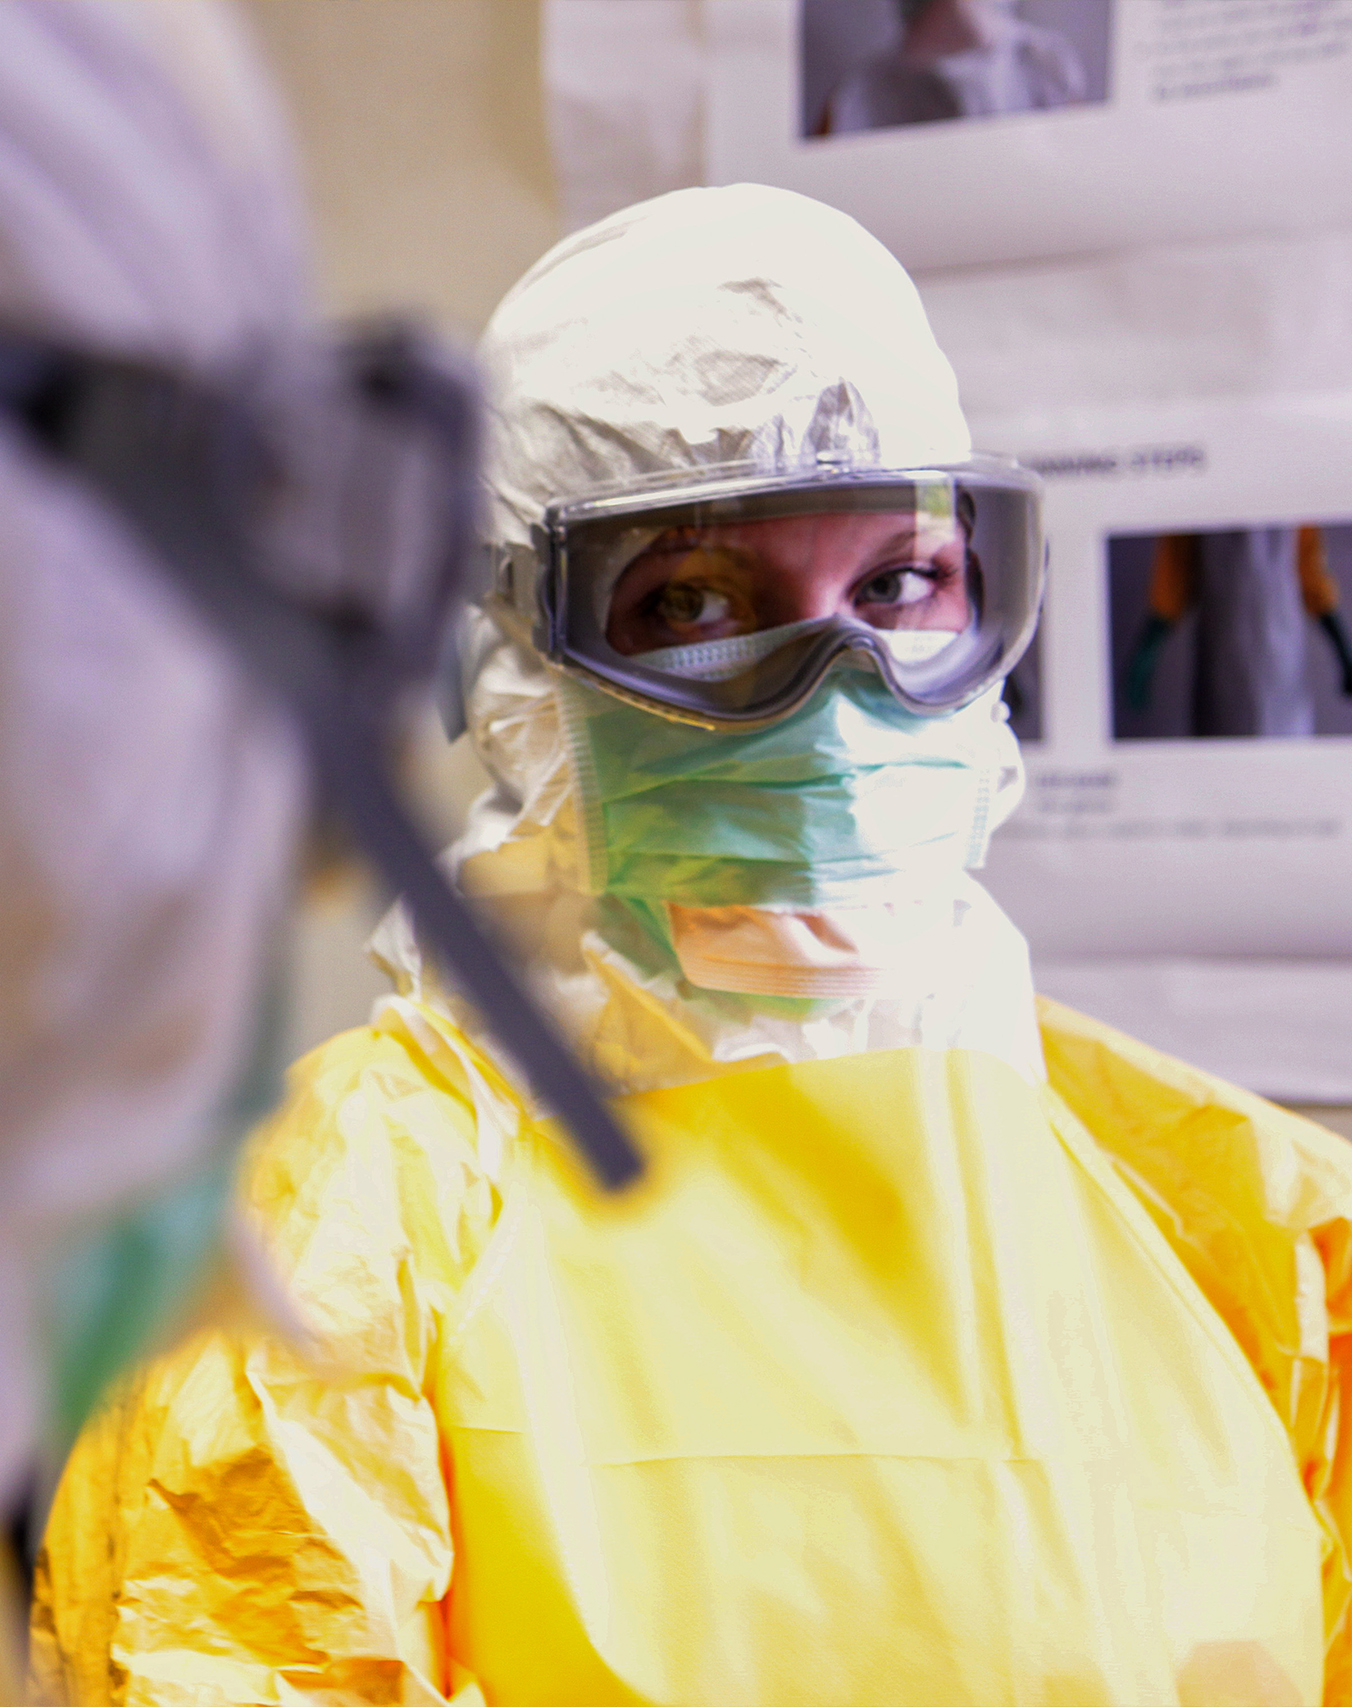 Coronavirus Pandemic. A disinfector in a protective suit and mask sprays disinfectants in the room.